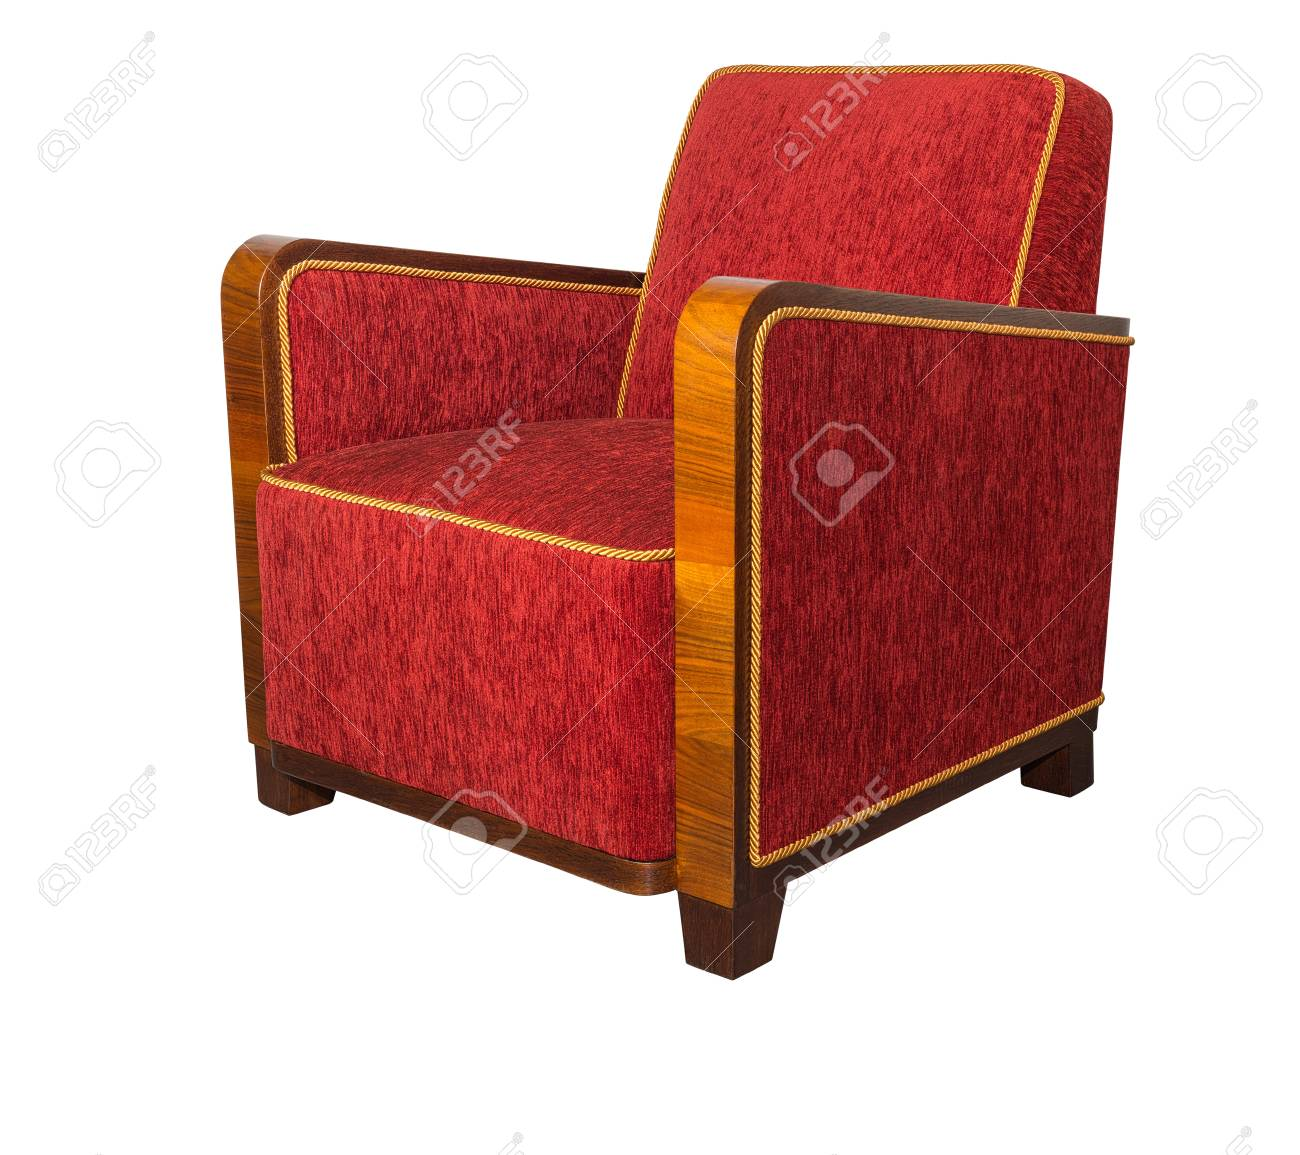 Art Deco Style Upholstered Red Armchair With Angular Wooden Armrests Stock Photo Picture And Royalty Free Image Image 84933688